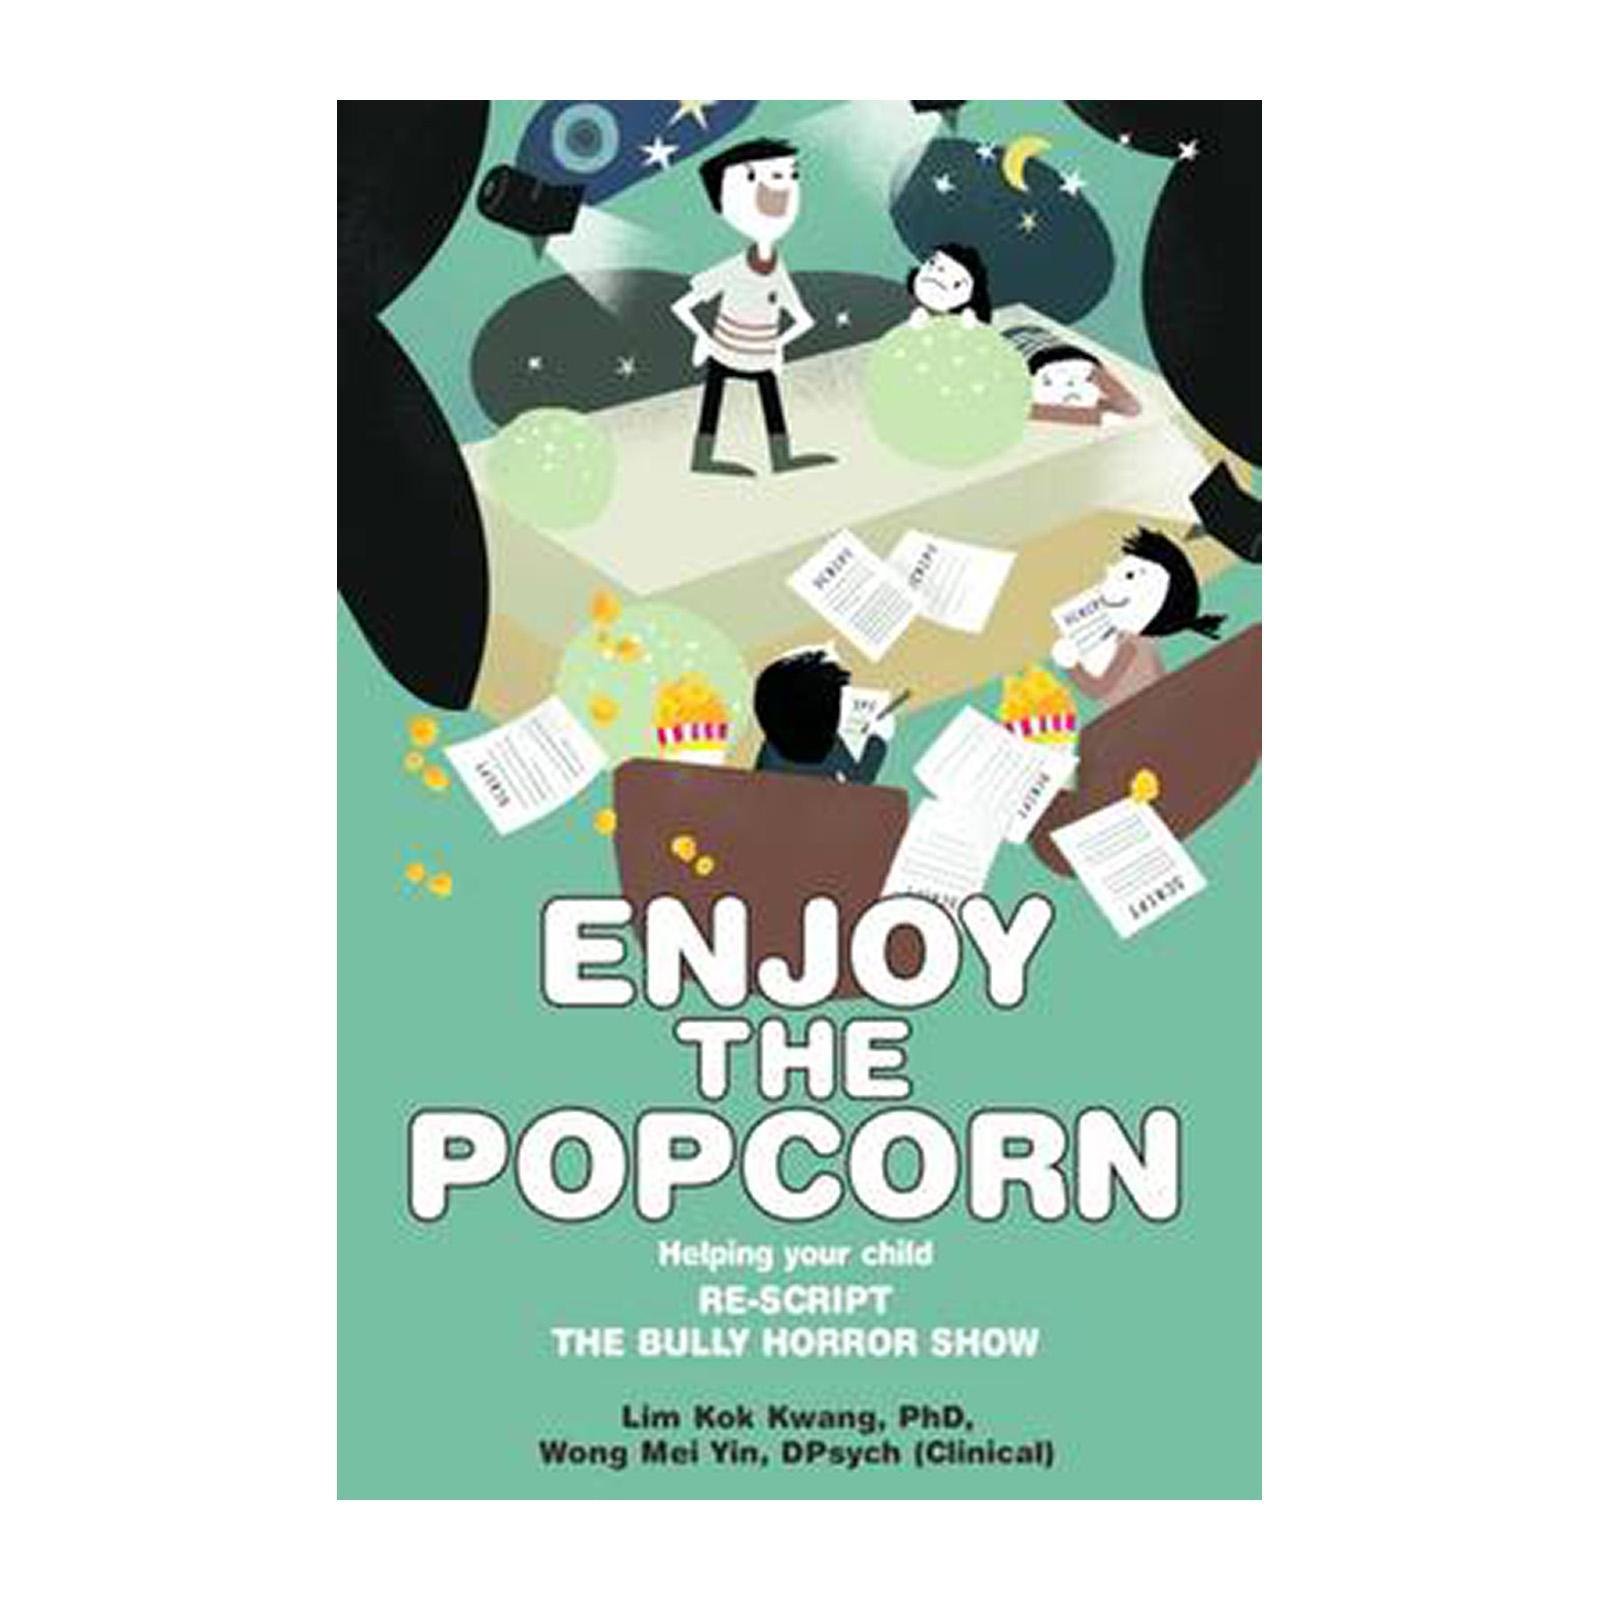 Enjoy The Popcorn: Helping Your Child Re-Script The Bully Horror Show (Paperback)